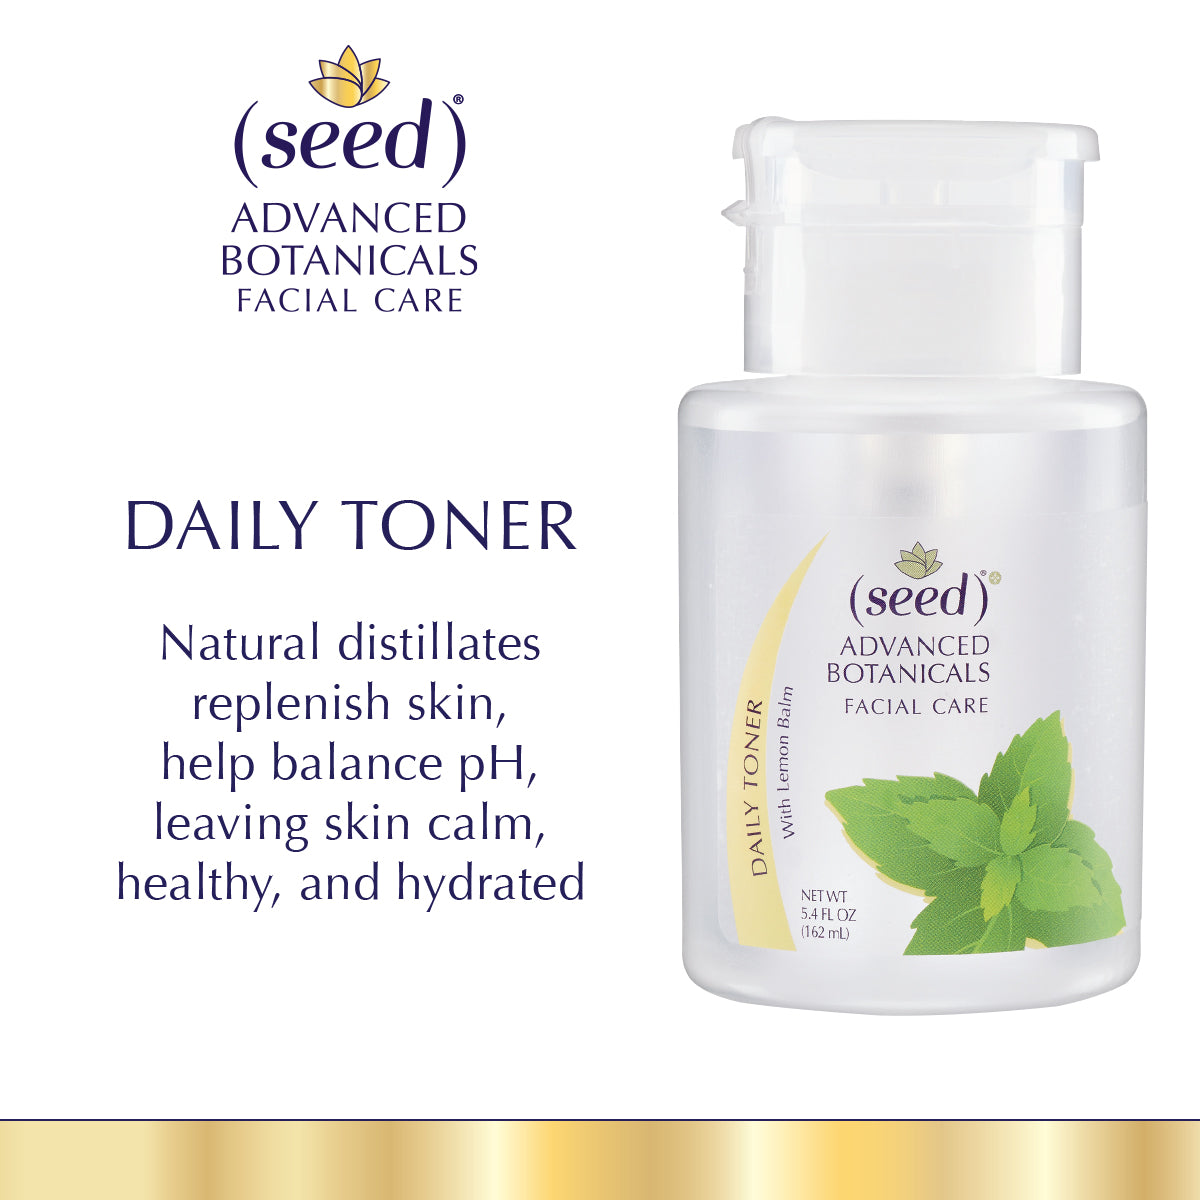 Seed Advanced Botanicals Daily Face Toner Benefits